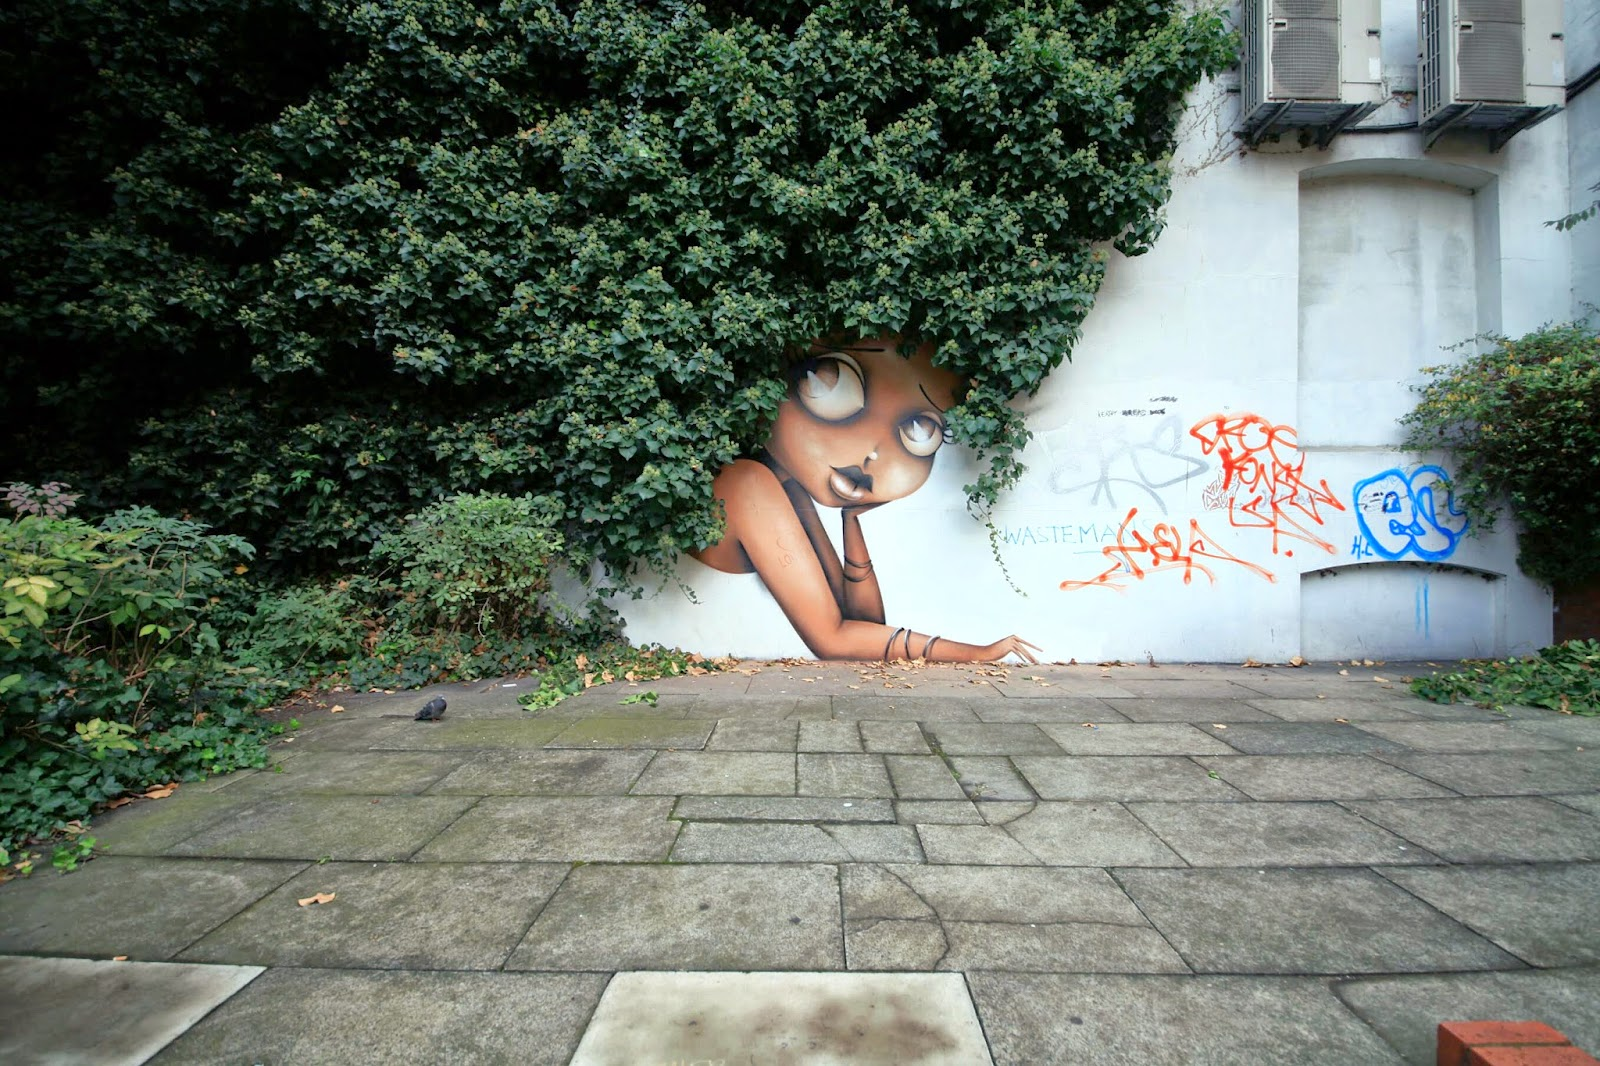 Vinnie creates a new street piece in London, UK